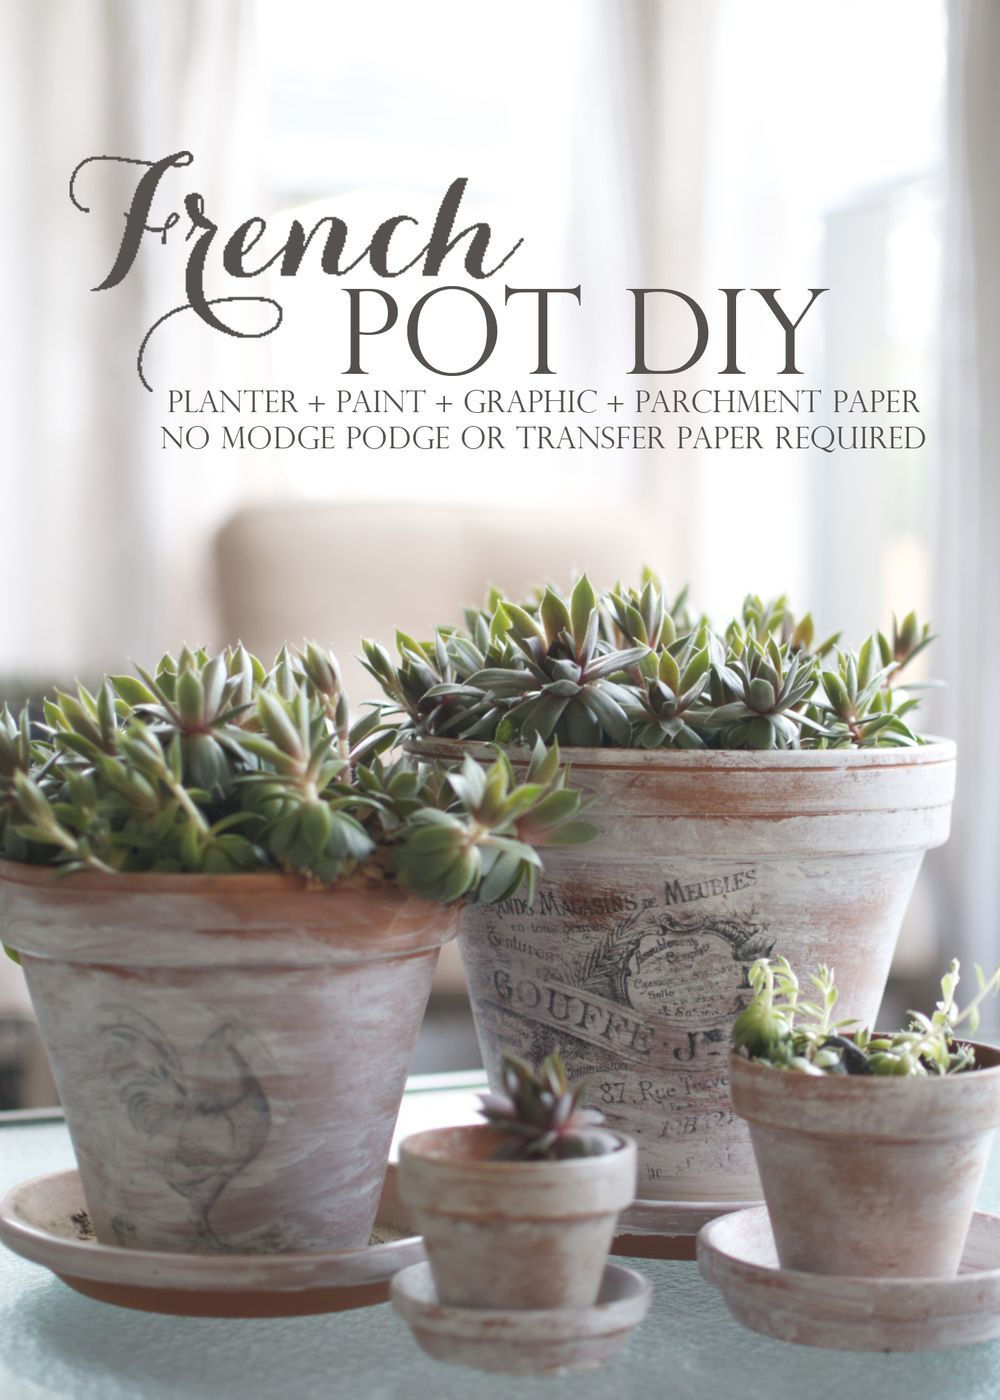 Climer photography diy french pots in springfield mo climer climer photography diy french pots in springfield mo climer photography springfield missouri wedding solutioingenieria Image collections